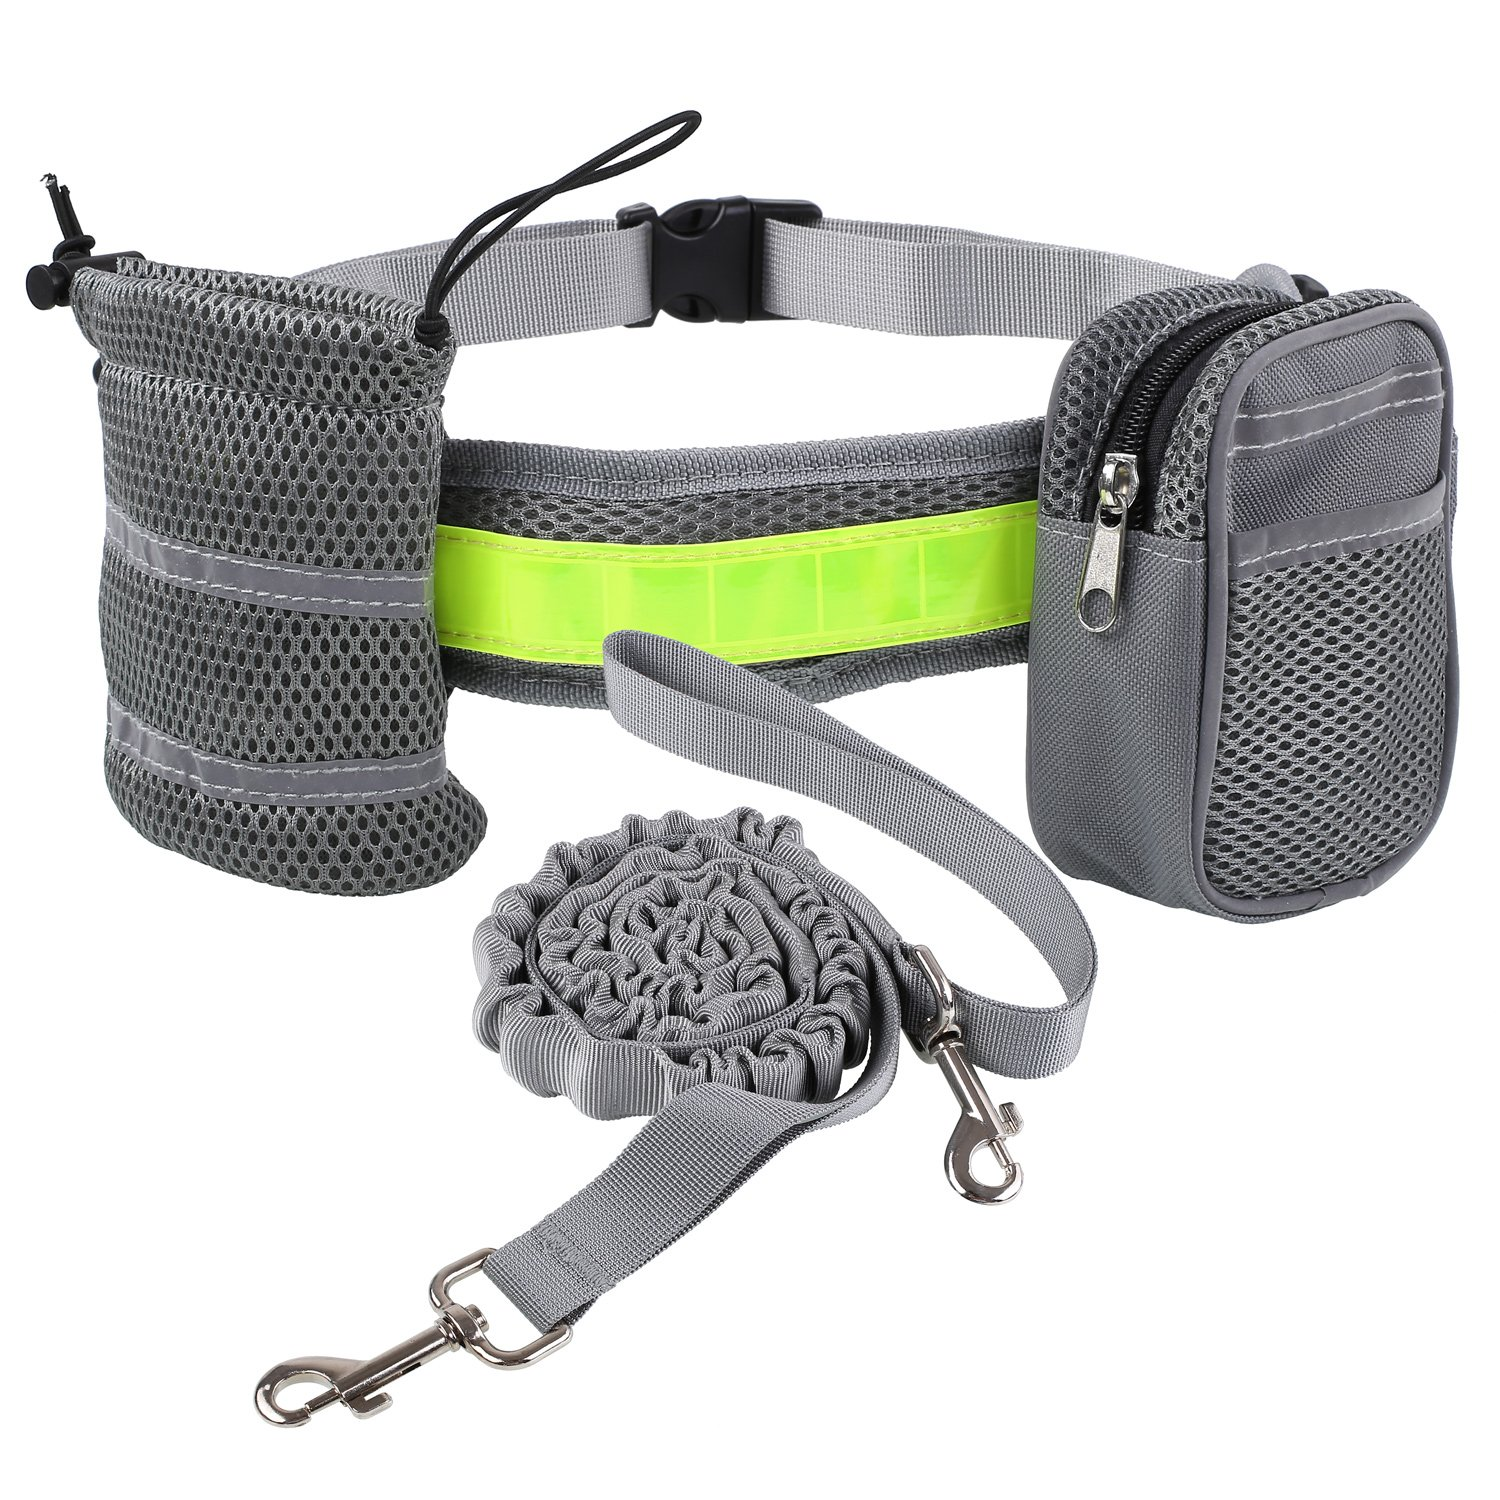 PEDY Hands Free Dog Leash, Retractable Bungee Dog Leash, Reflective Waist Belt with Bottle Holder Waist Bag, Adjustable for Large and Small Dogs